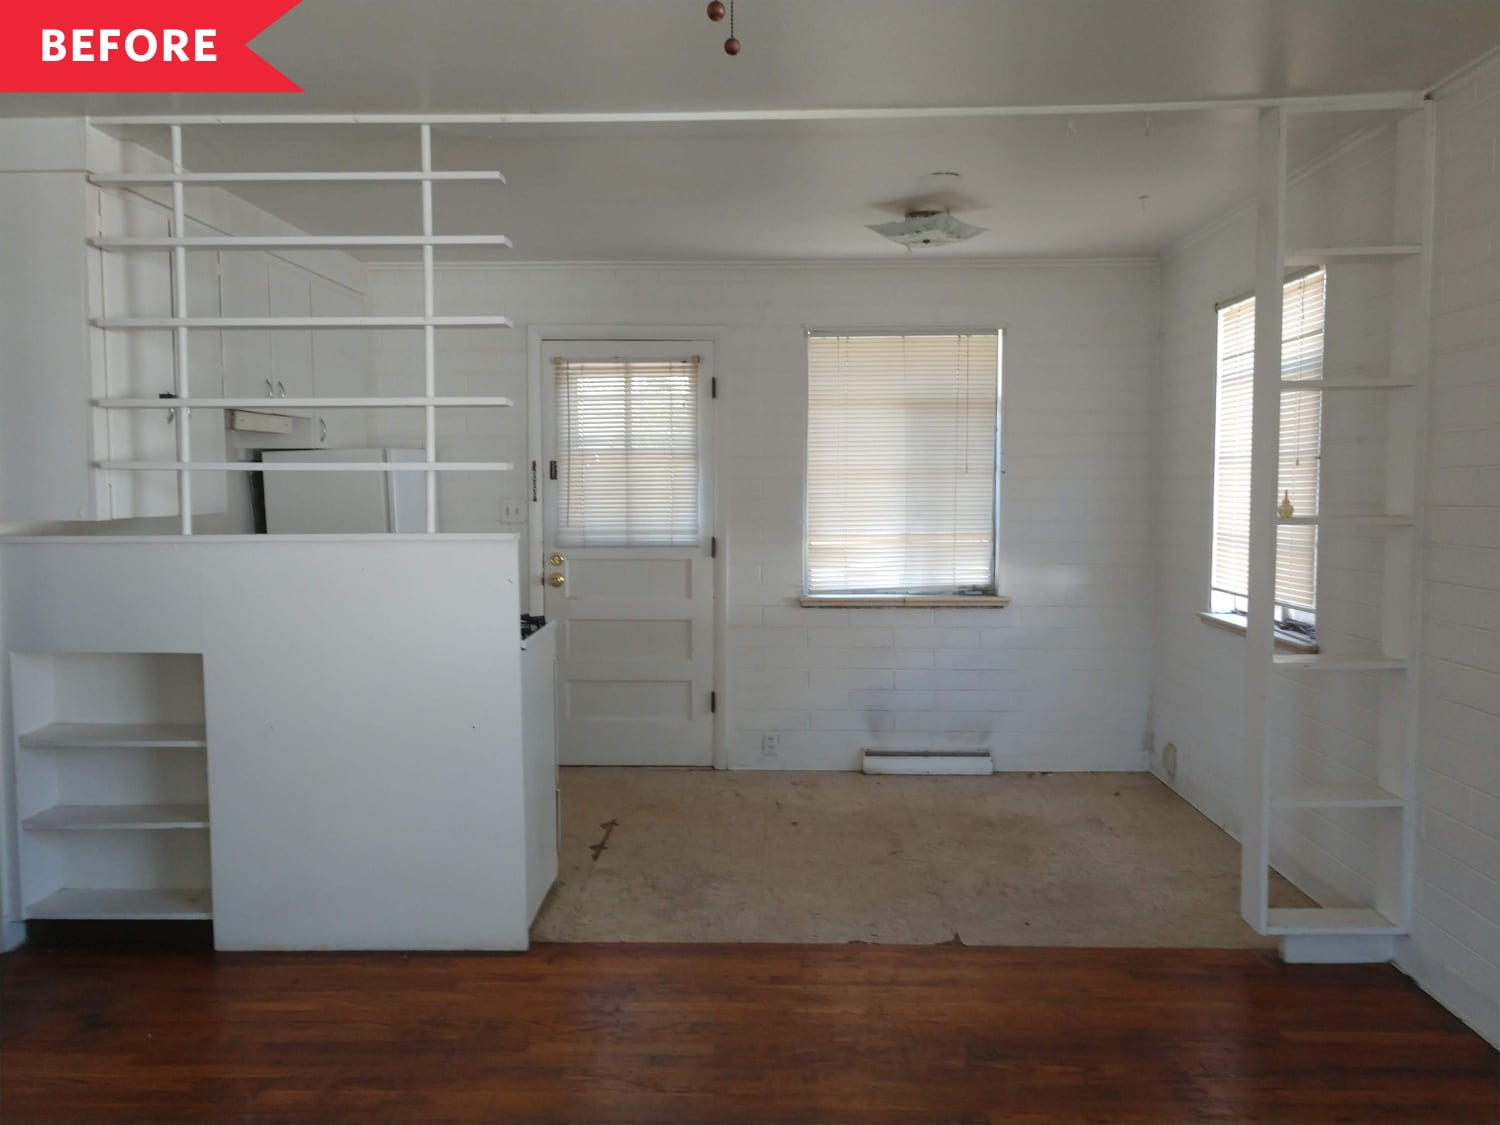 Before & After: A Rental Apartment's Dingy Kitchen Is Unrecognizable After a Modern Reno